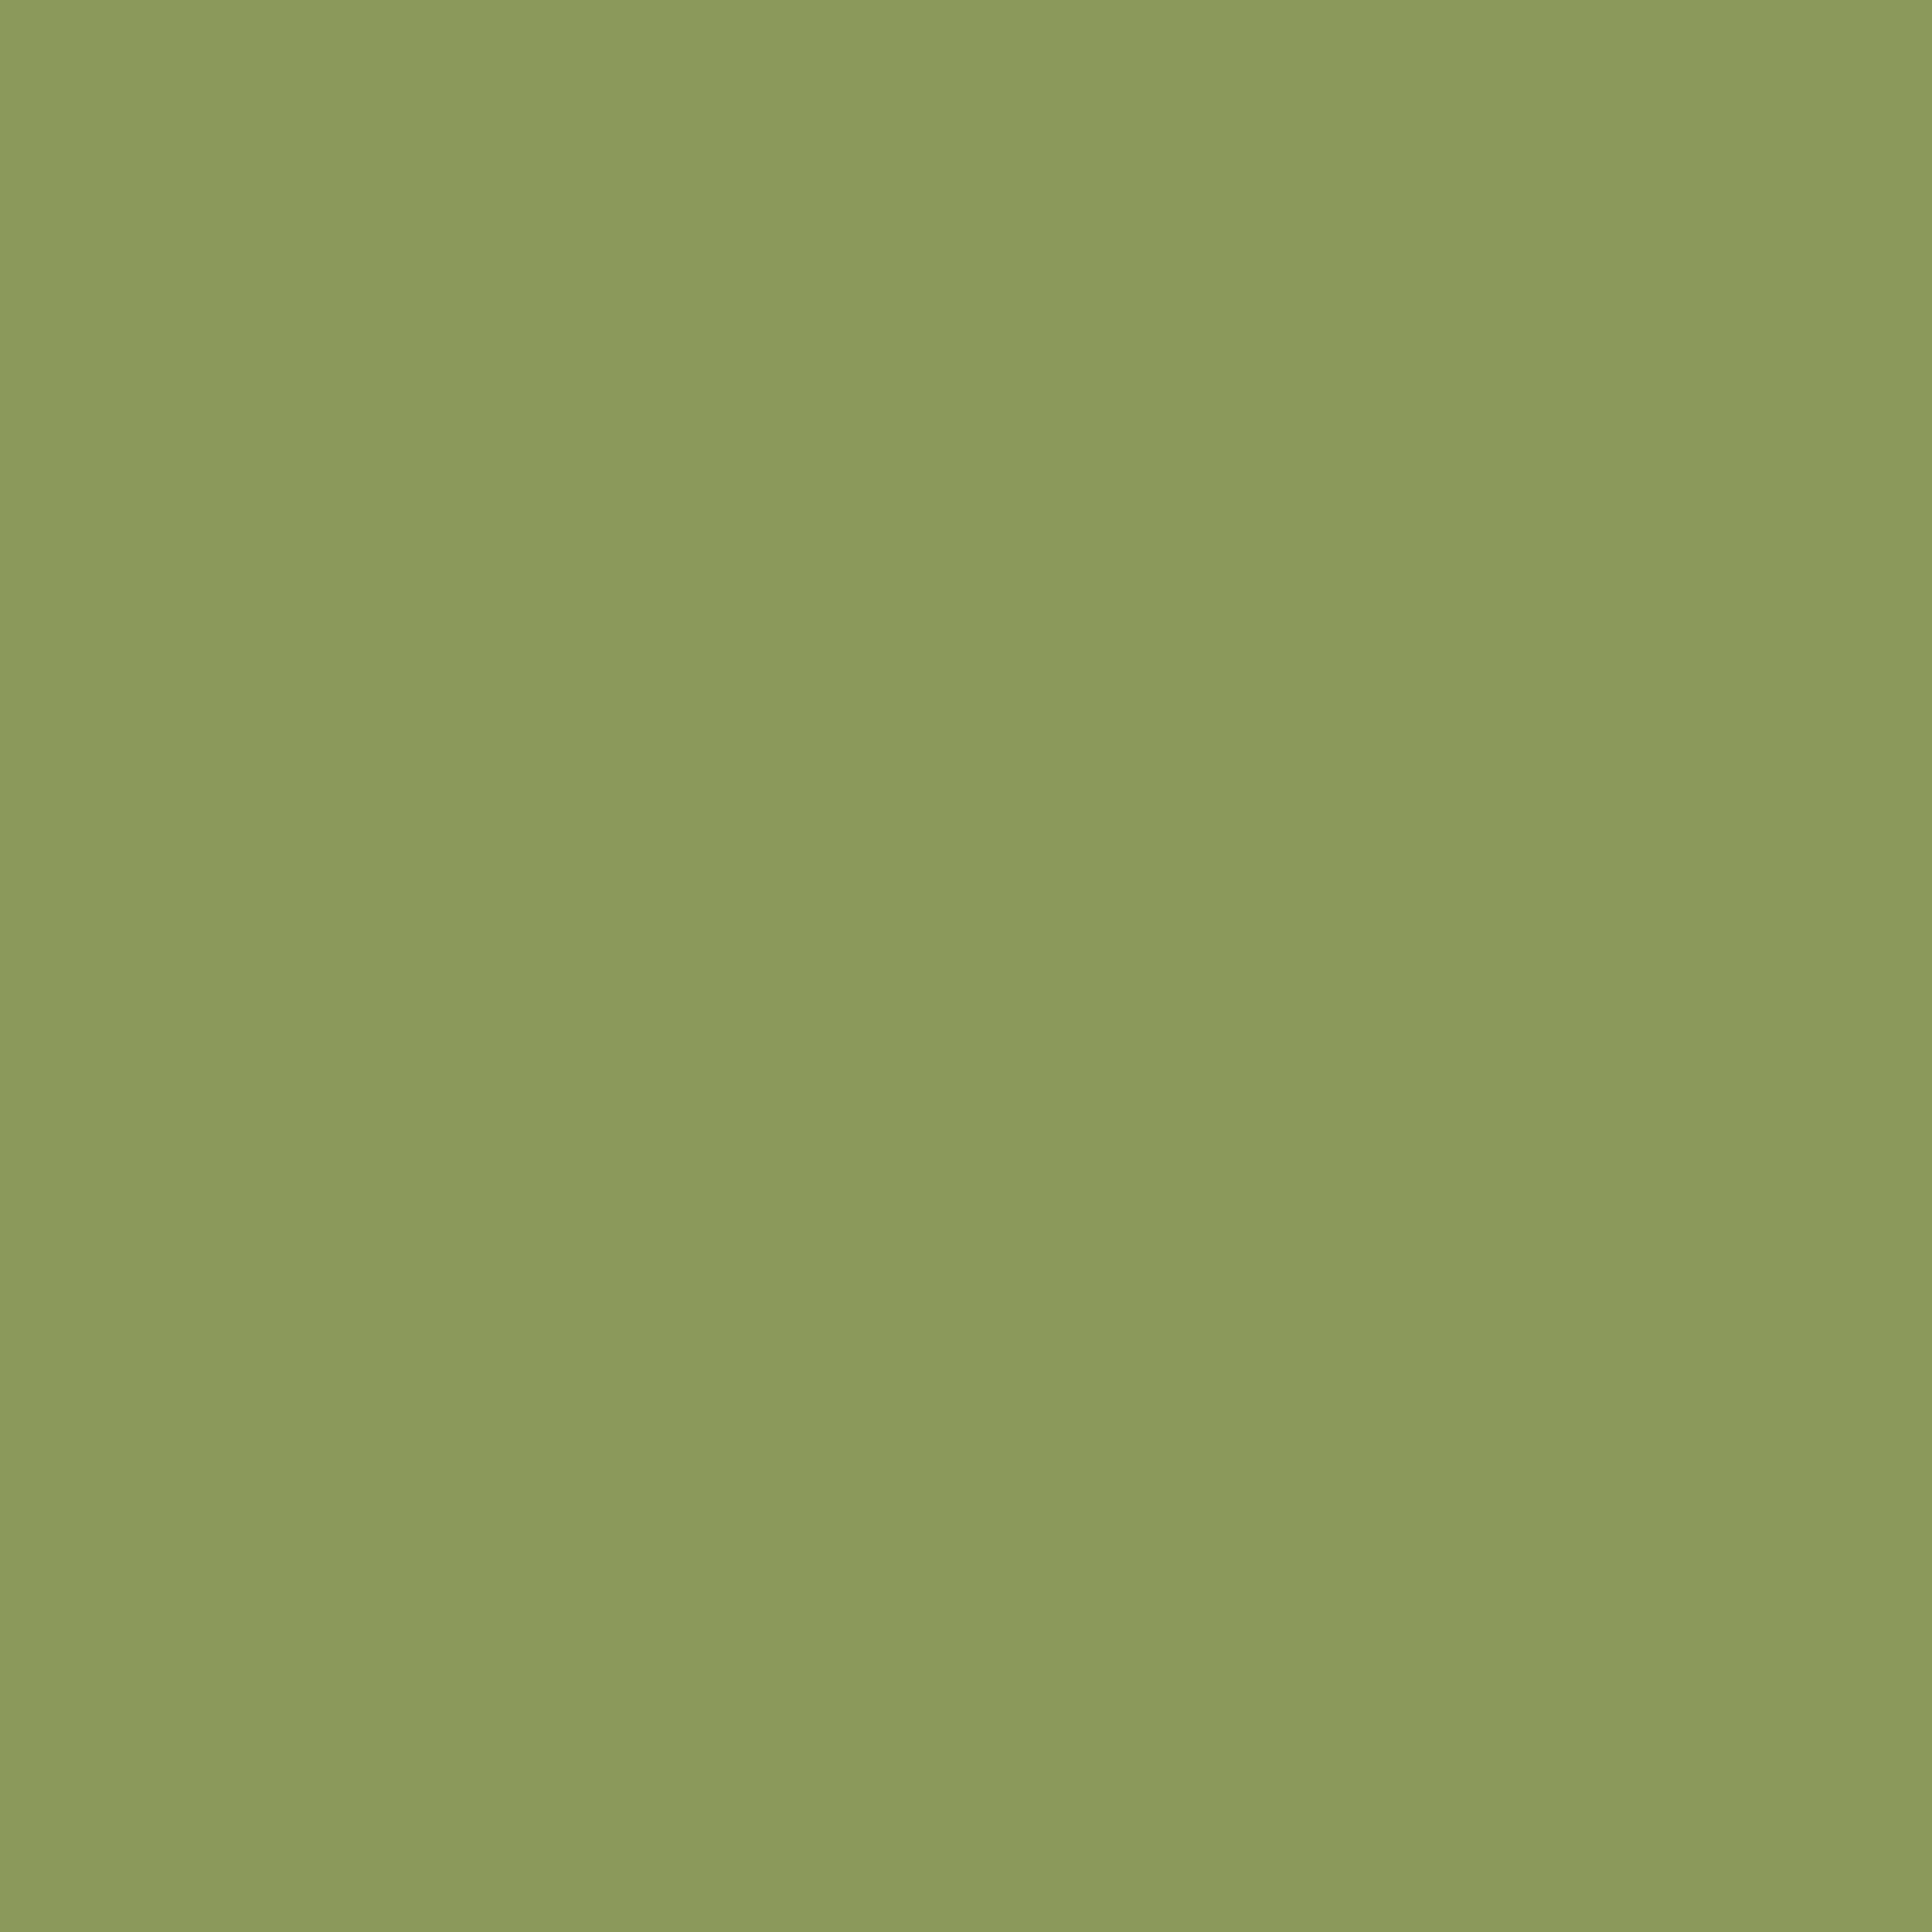 2732x2732 Moss Green Solid Color Background